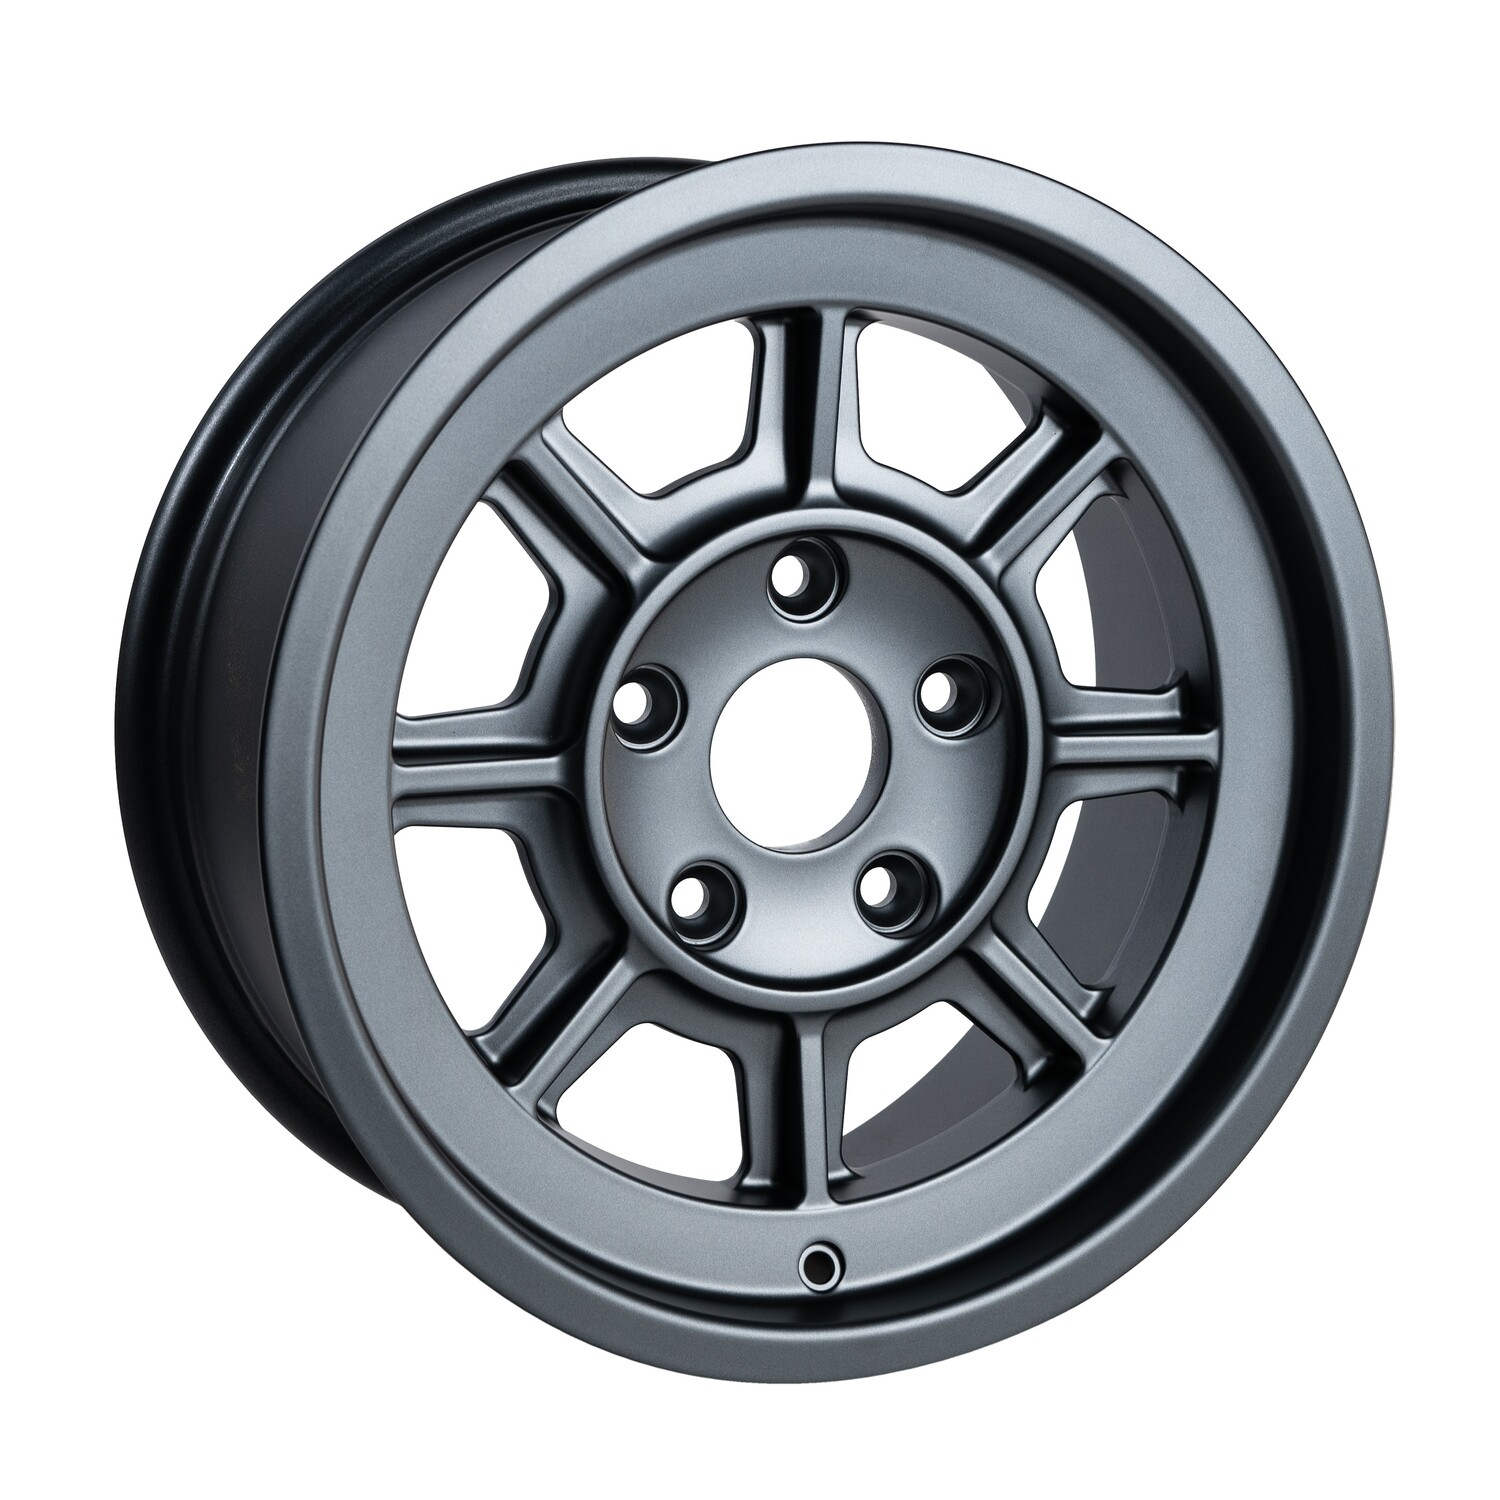 PAG1670 Satin Anthracite 16 x 7